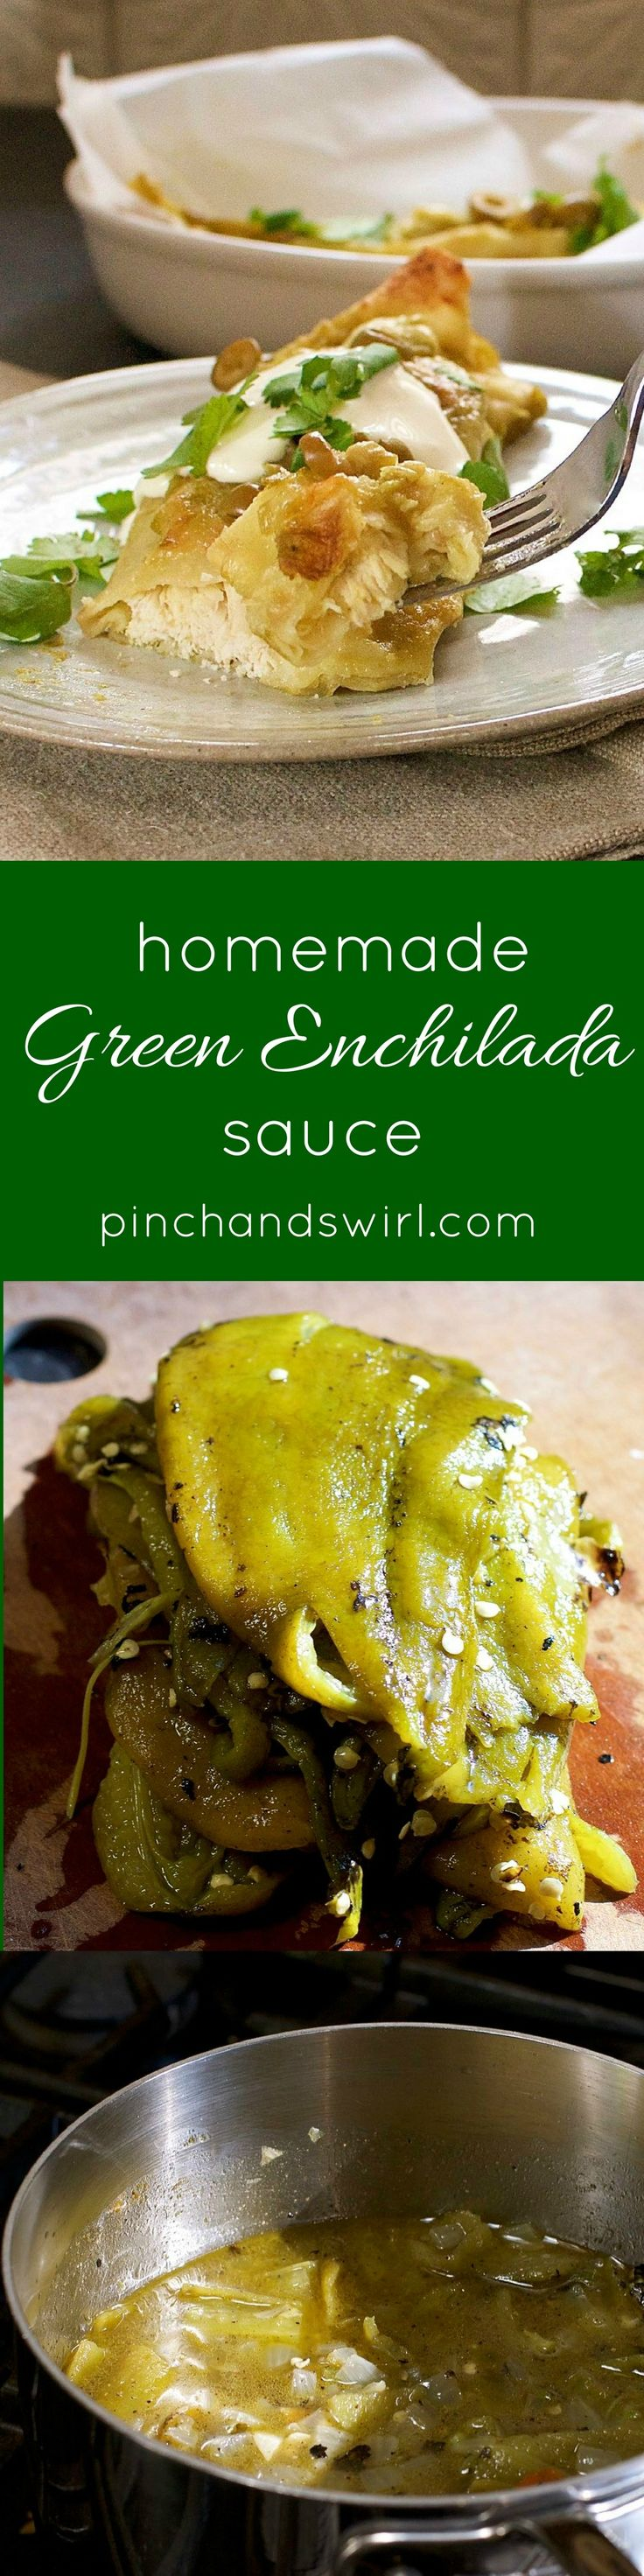 Green Chile Enchilada sauce is tangy and rich and, best of all, so easy to make yourself! Just roast green chiles, then simmer them with onions, garlic, jalepenos and spices. Give the mixture a quick blend and you're ready to make enchiladas from scratch!